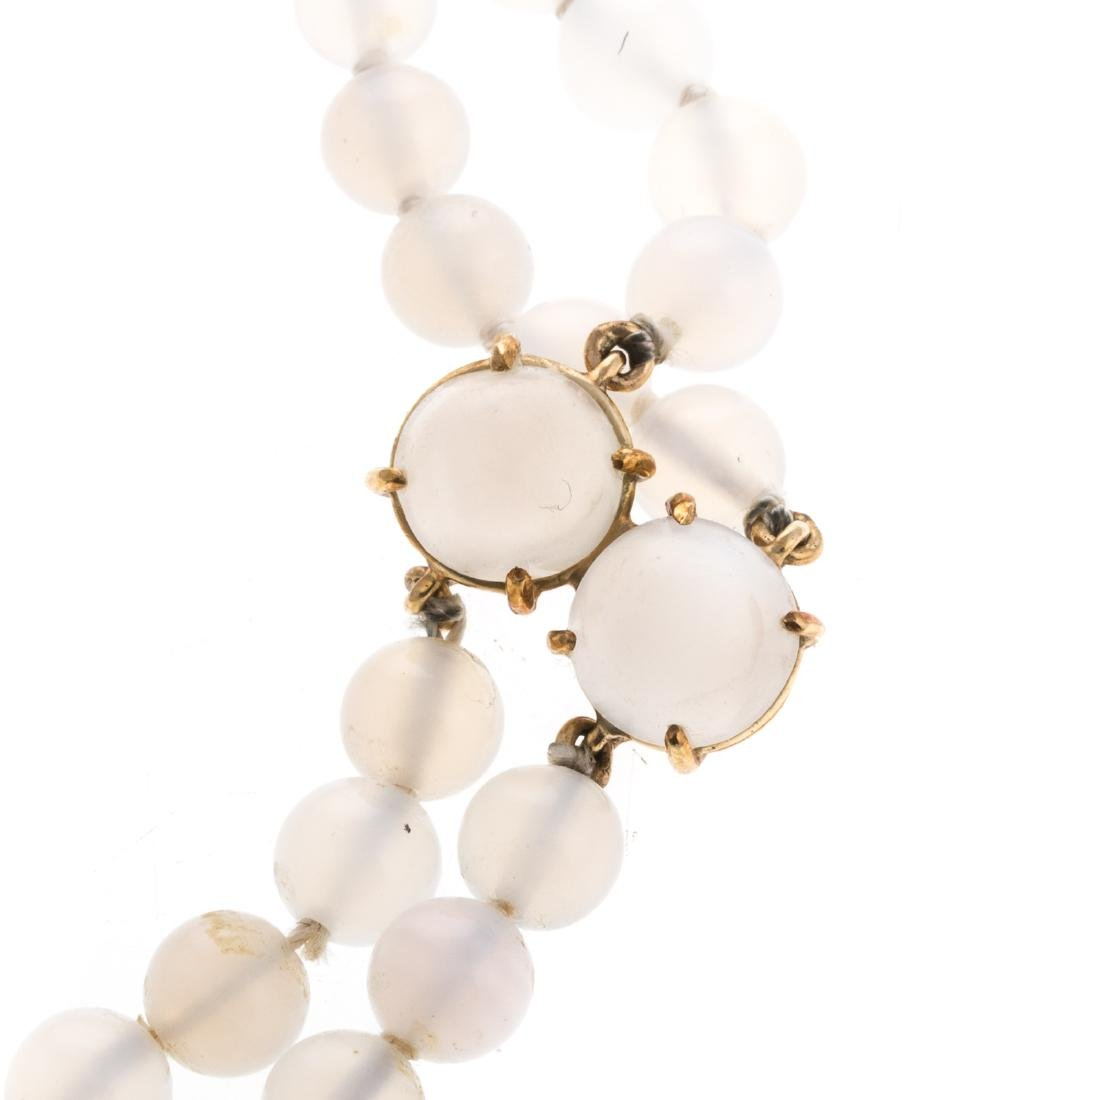 A Convertible 18K Moonstone Pin/Necklace - 3